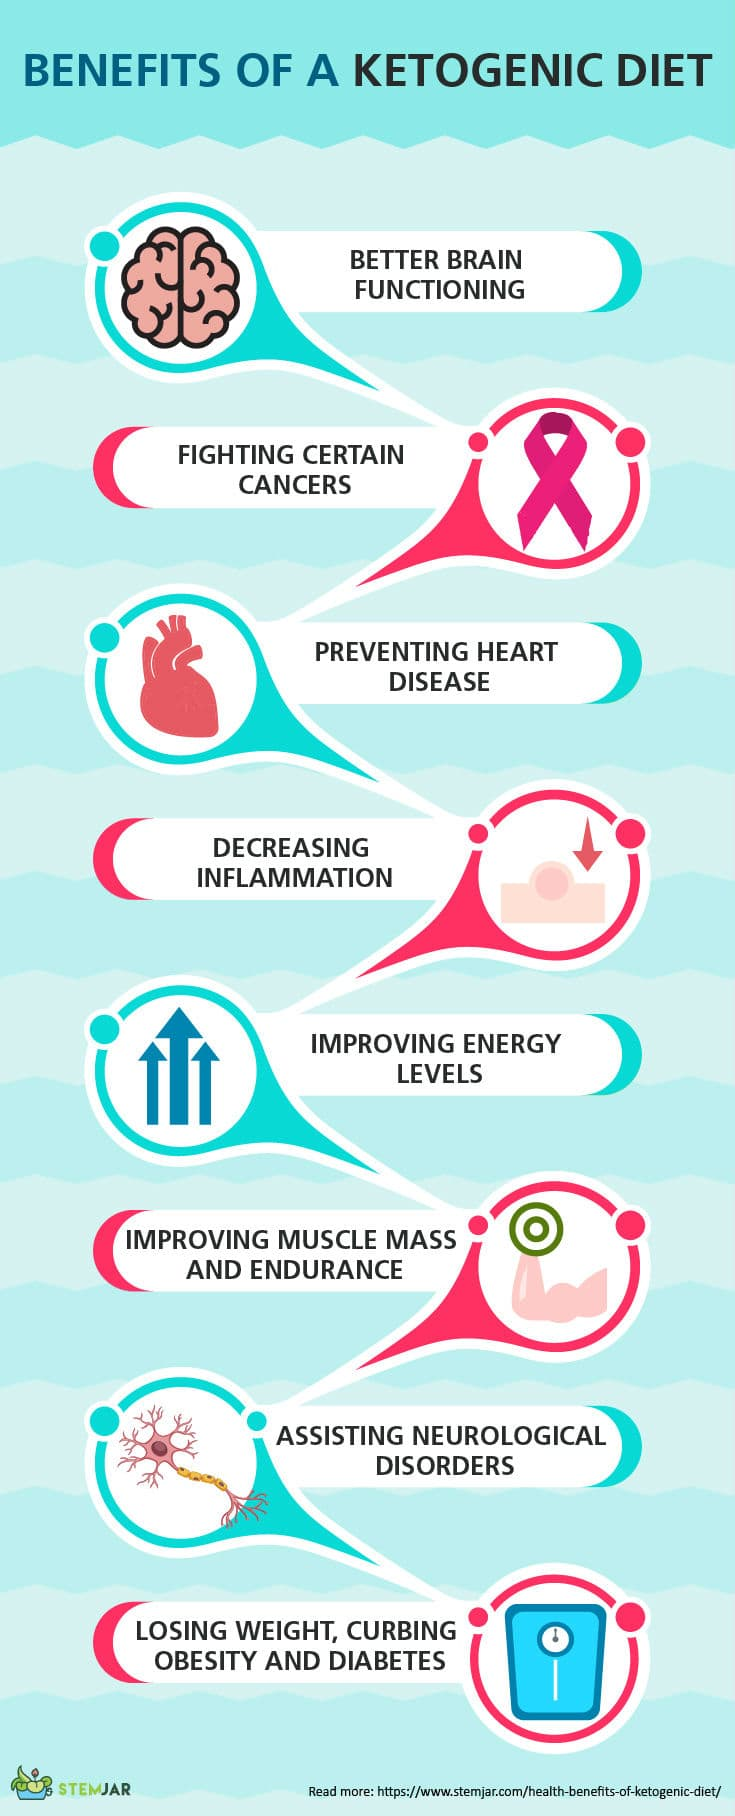 Benefits of a ketogenic diet infographic